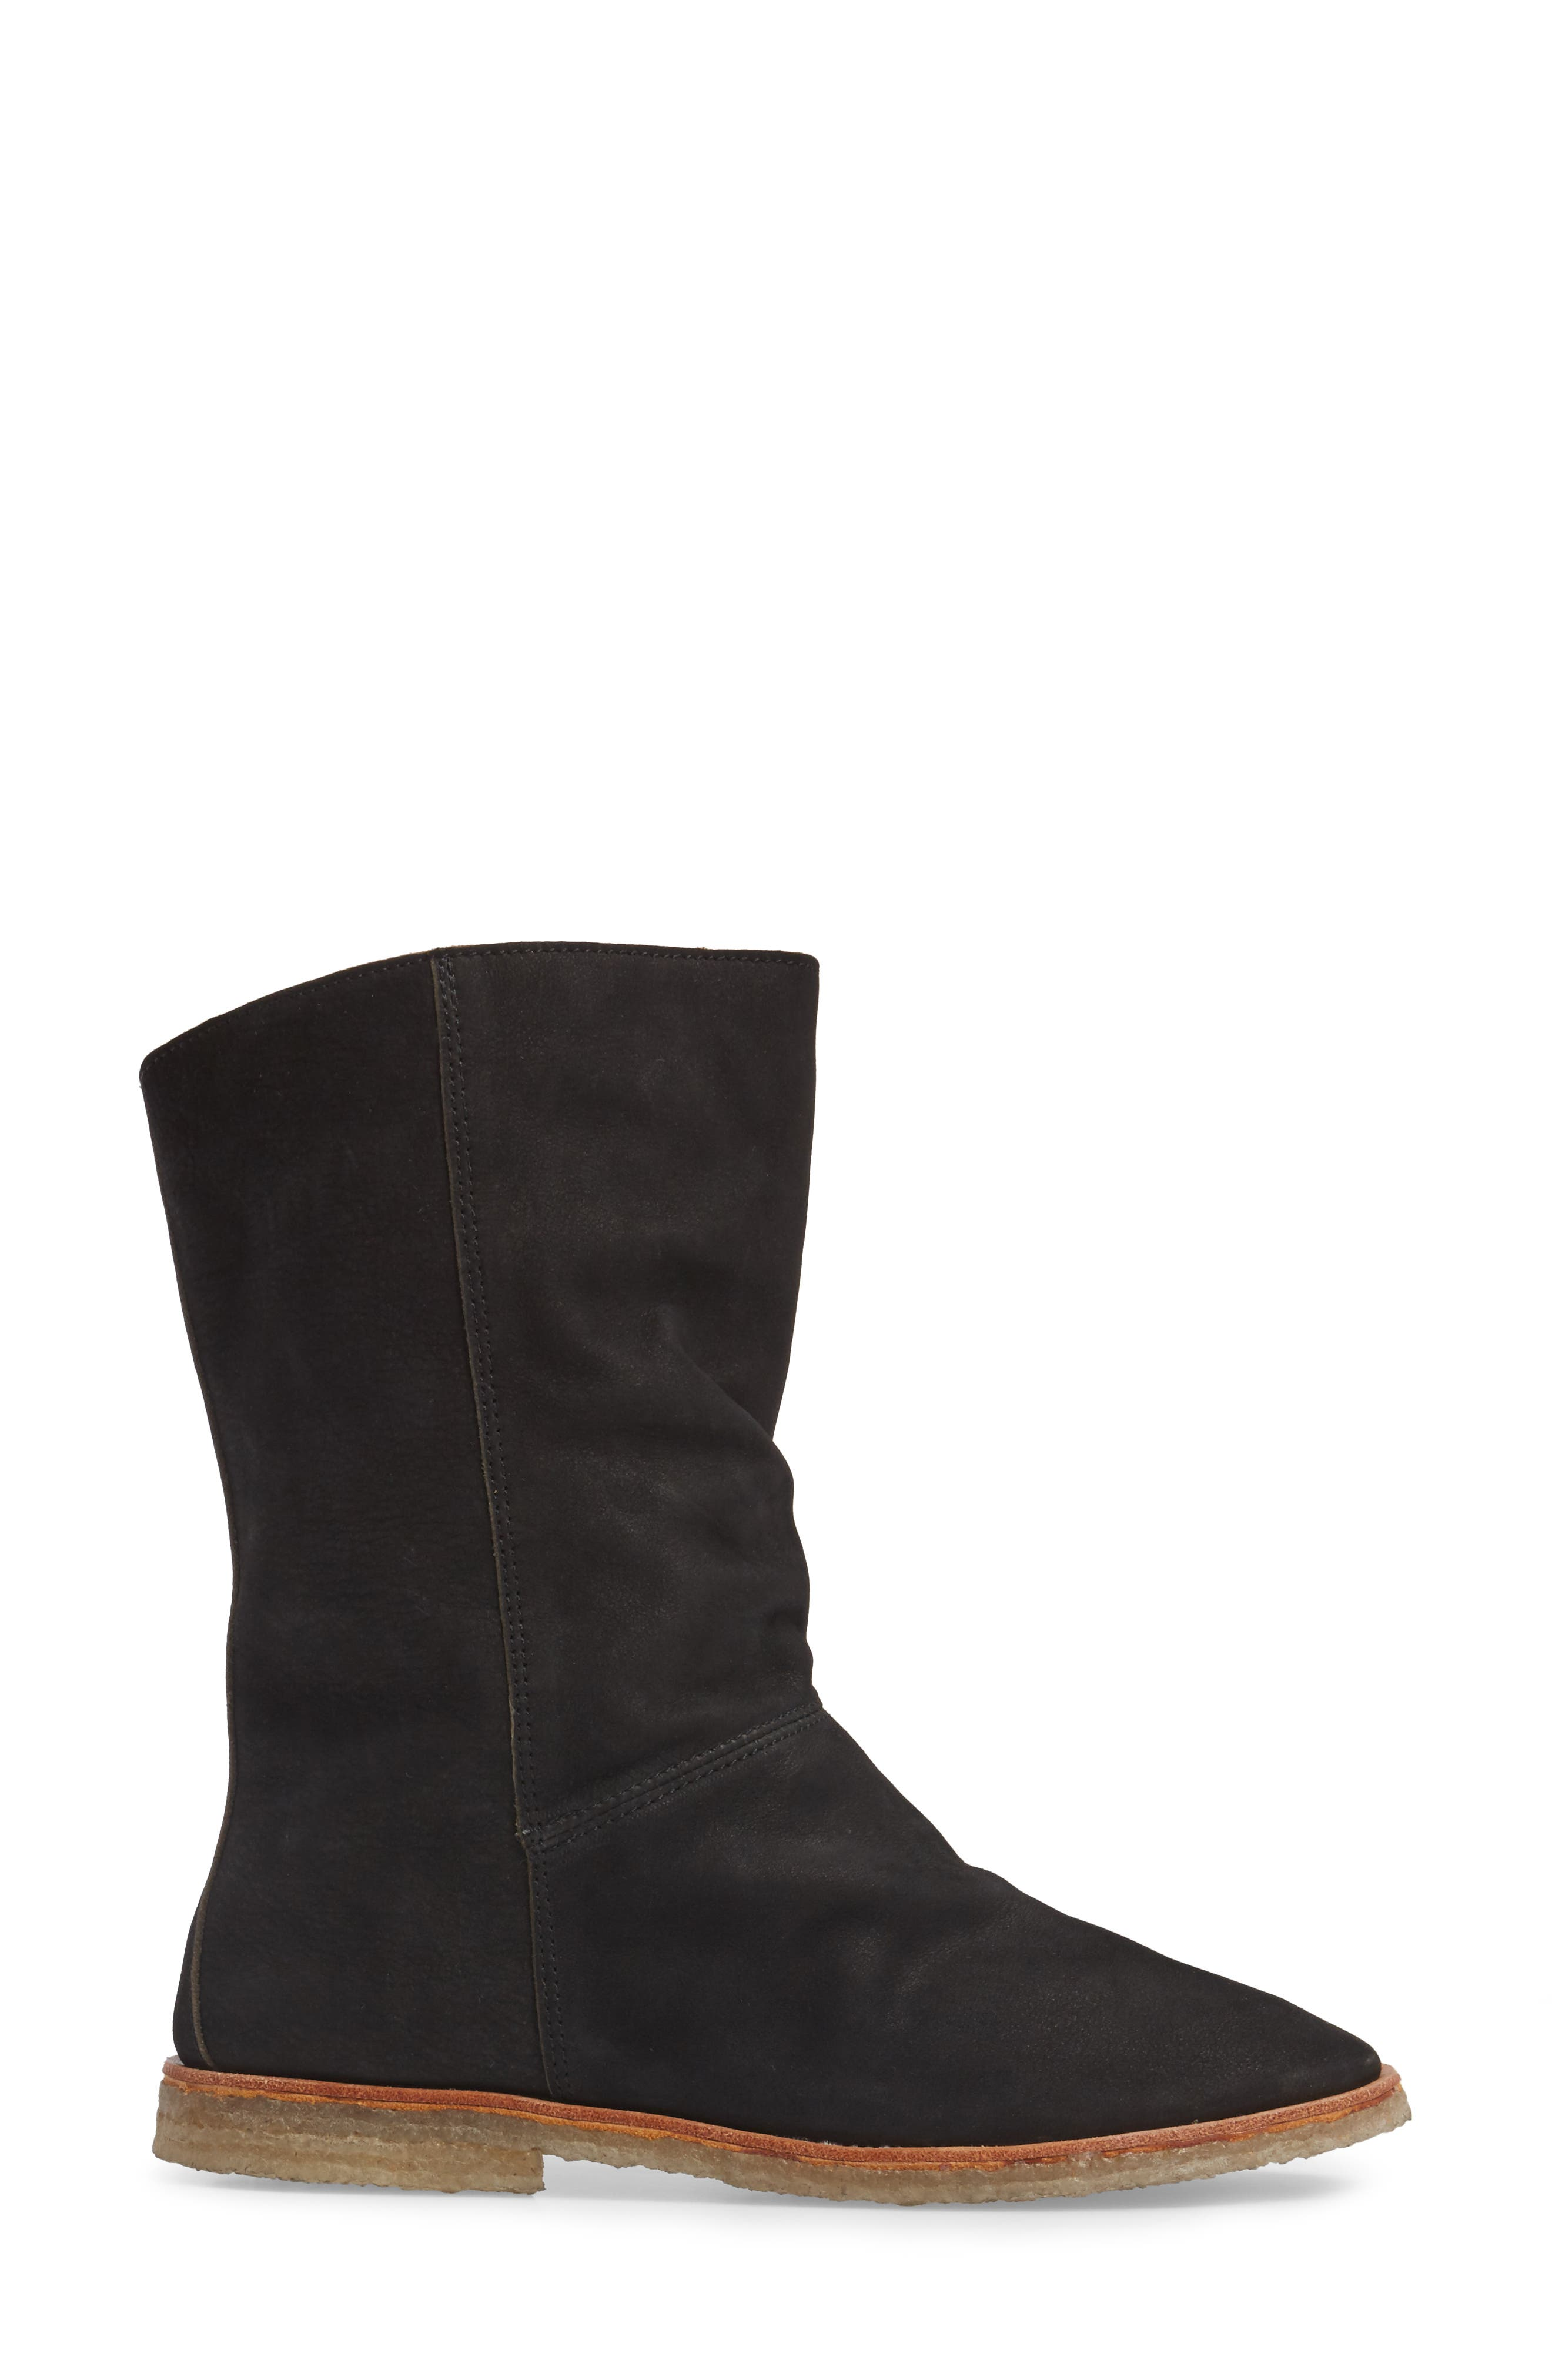 Owl Slouchy Bootie,                             Alternate thumbnail 3, color,                             001